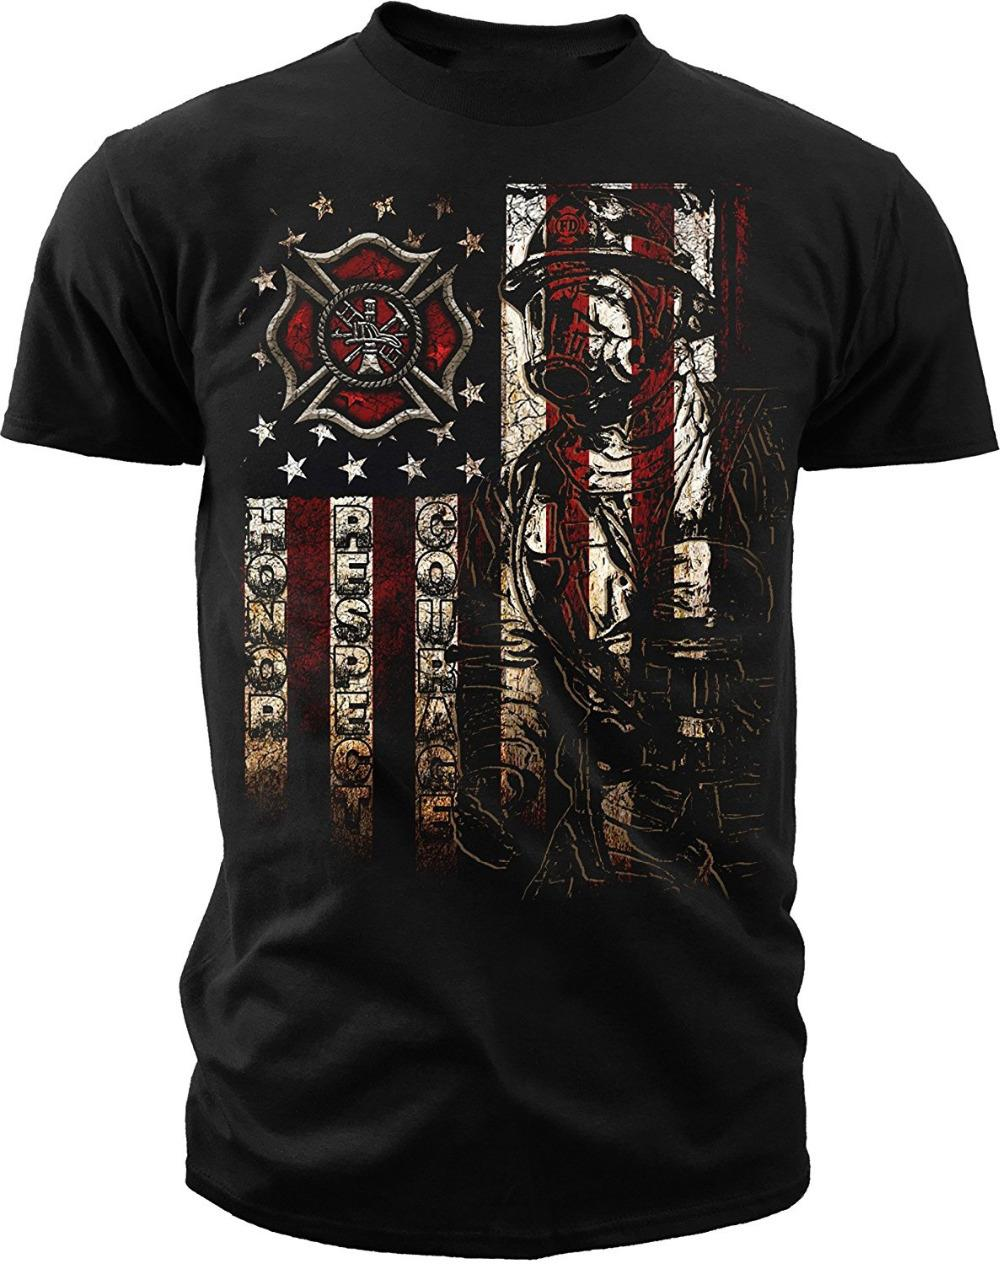 344f40779 Military T Shirts Crew Neck Men Short Graphic Ink Men'S Firefighter  American Flag T-Shirt Hot Sales Desig Tees